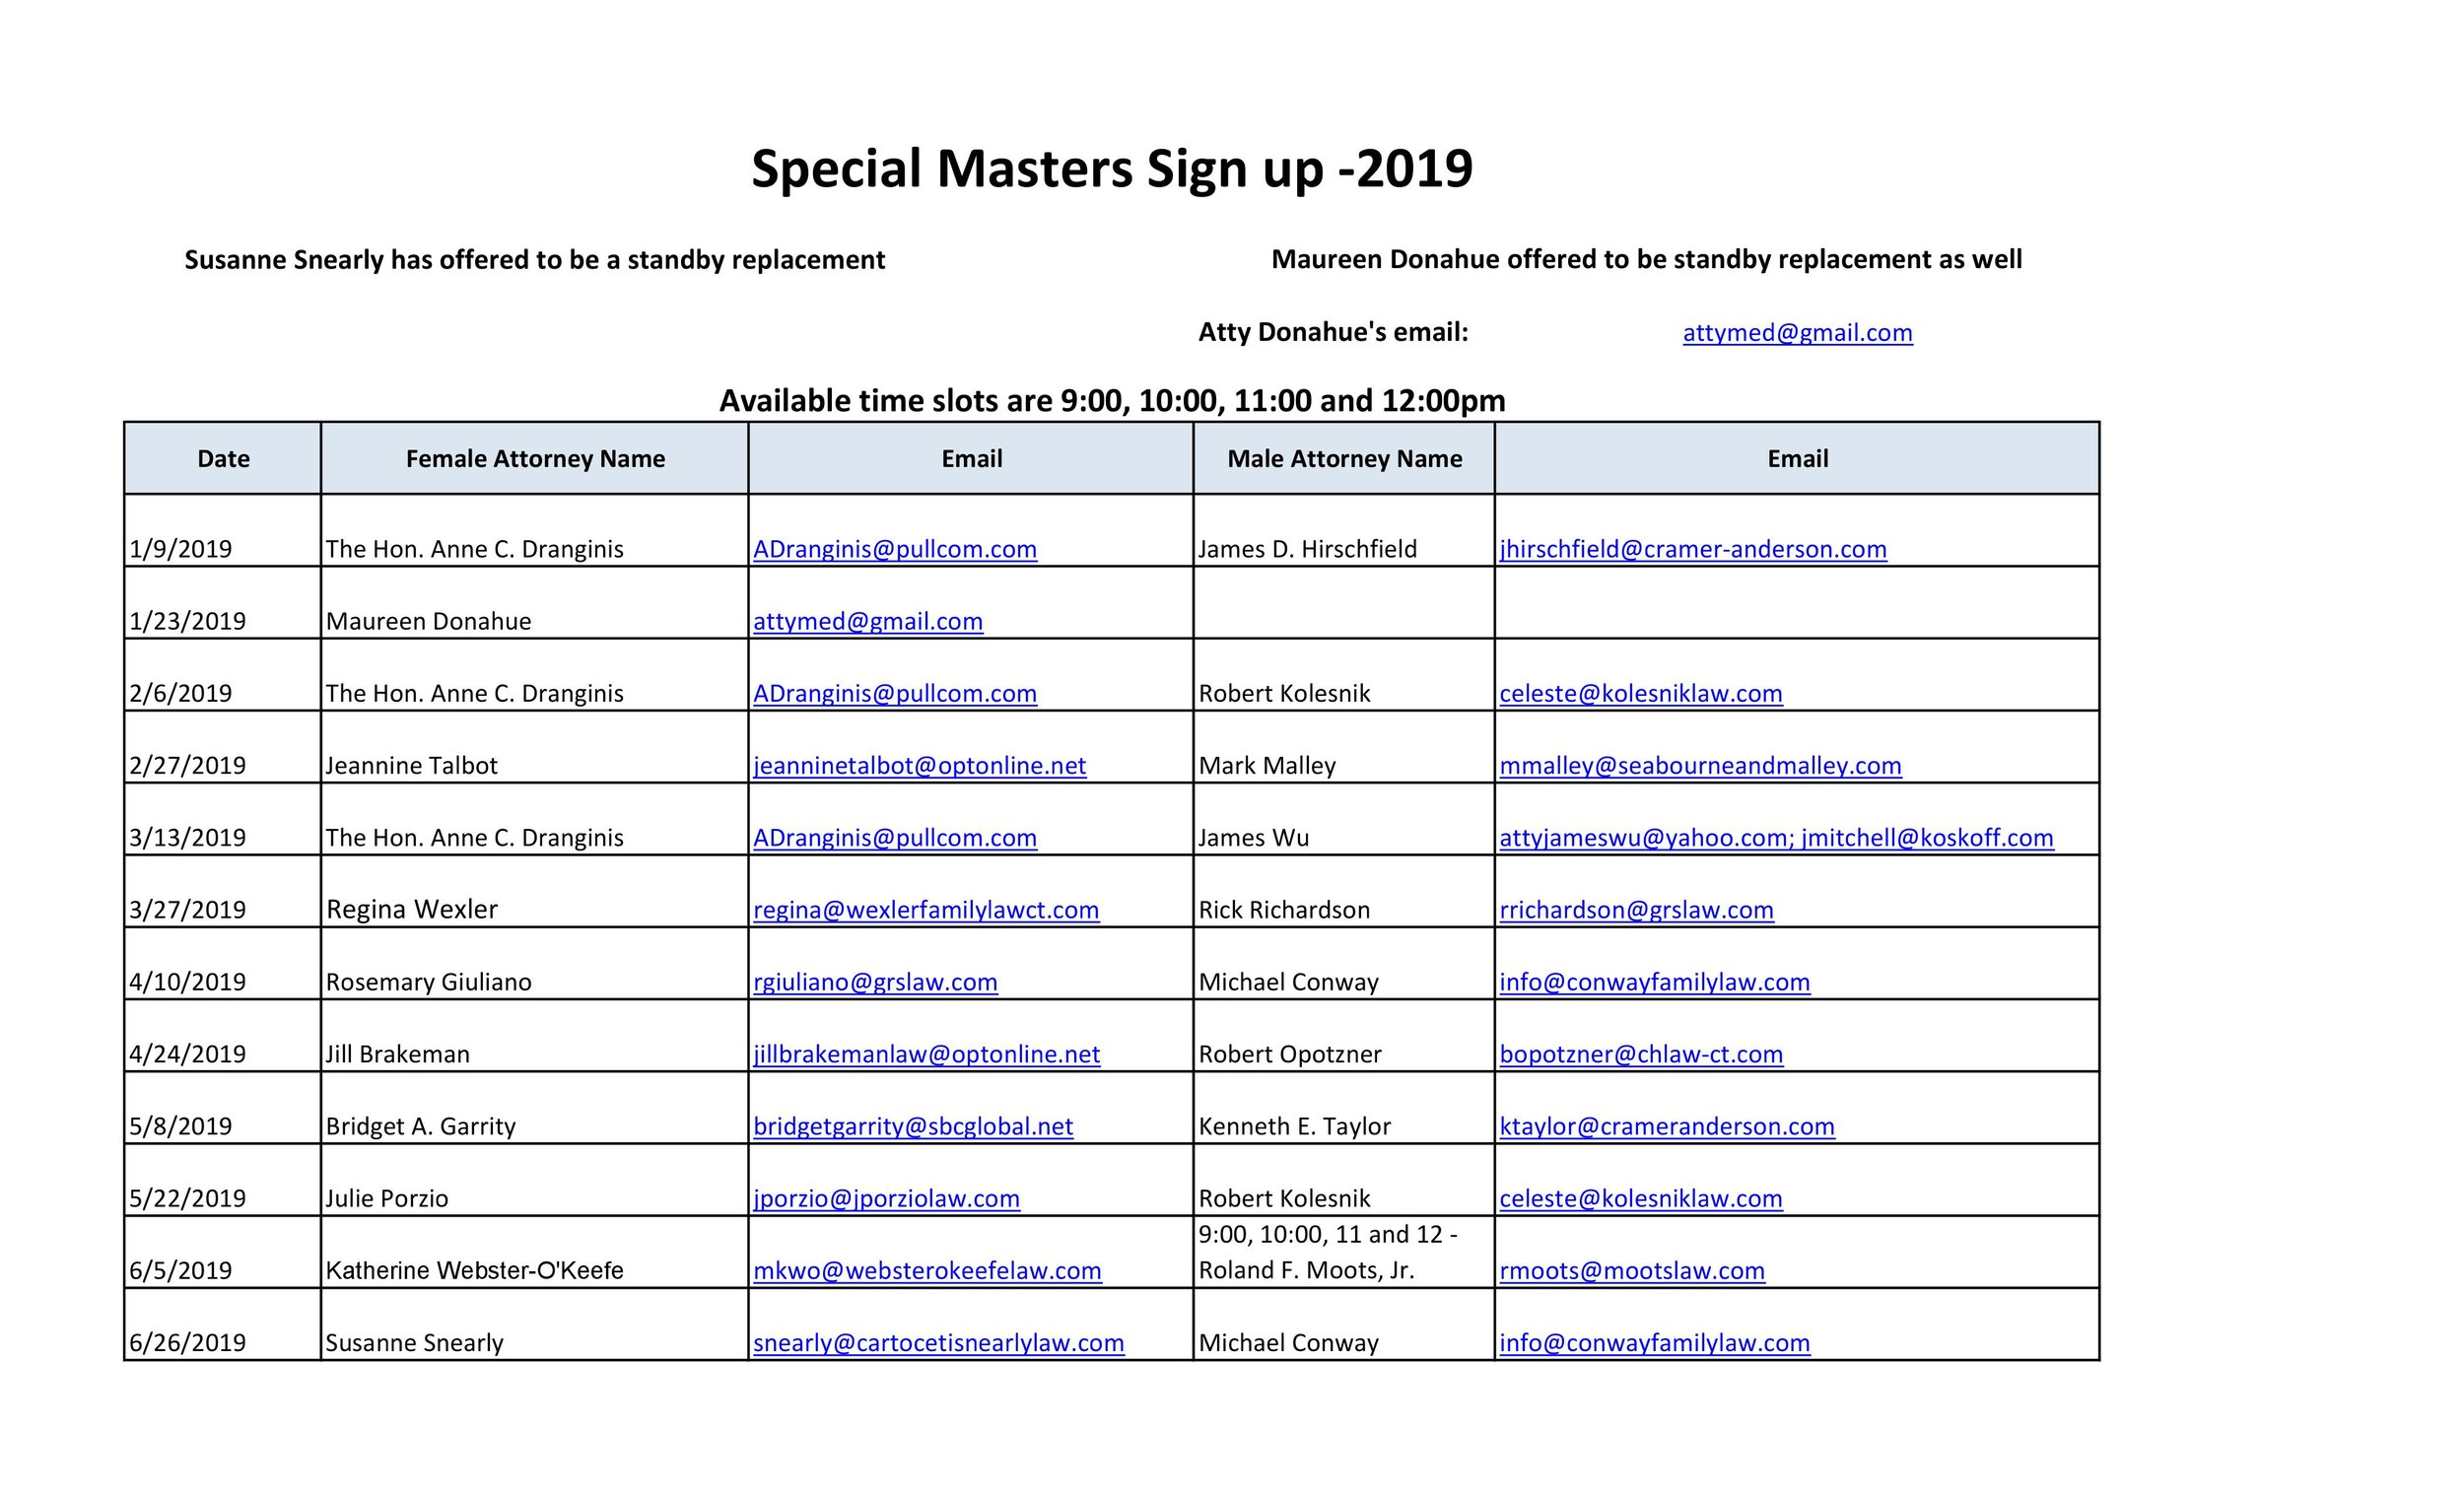 Special Masters Page 1.jpg